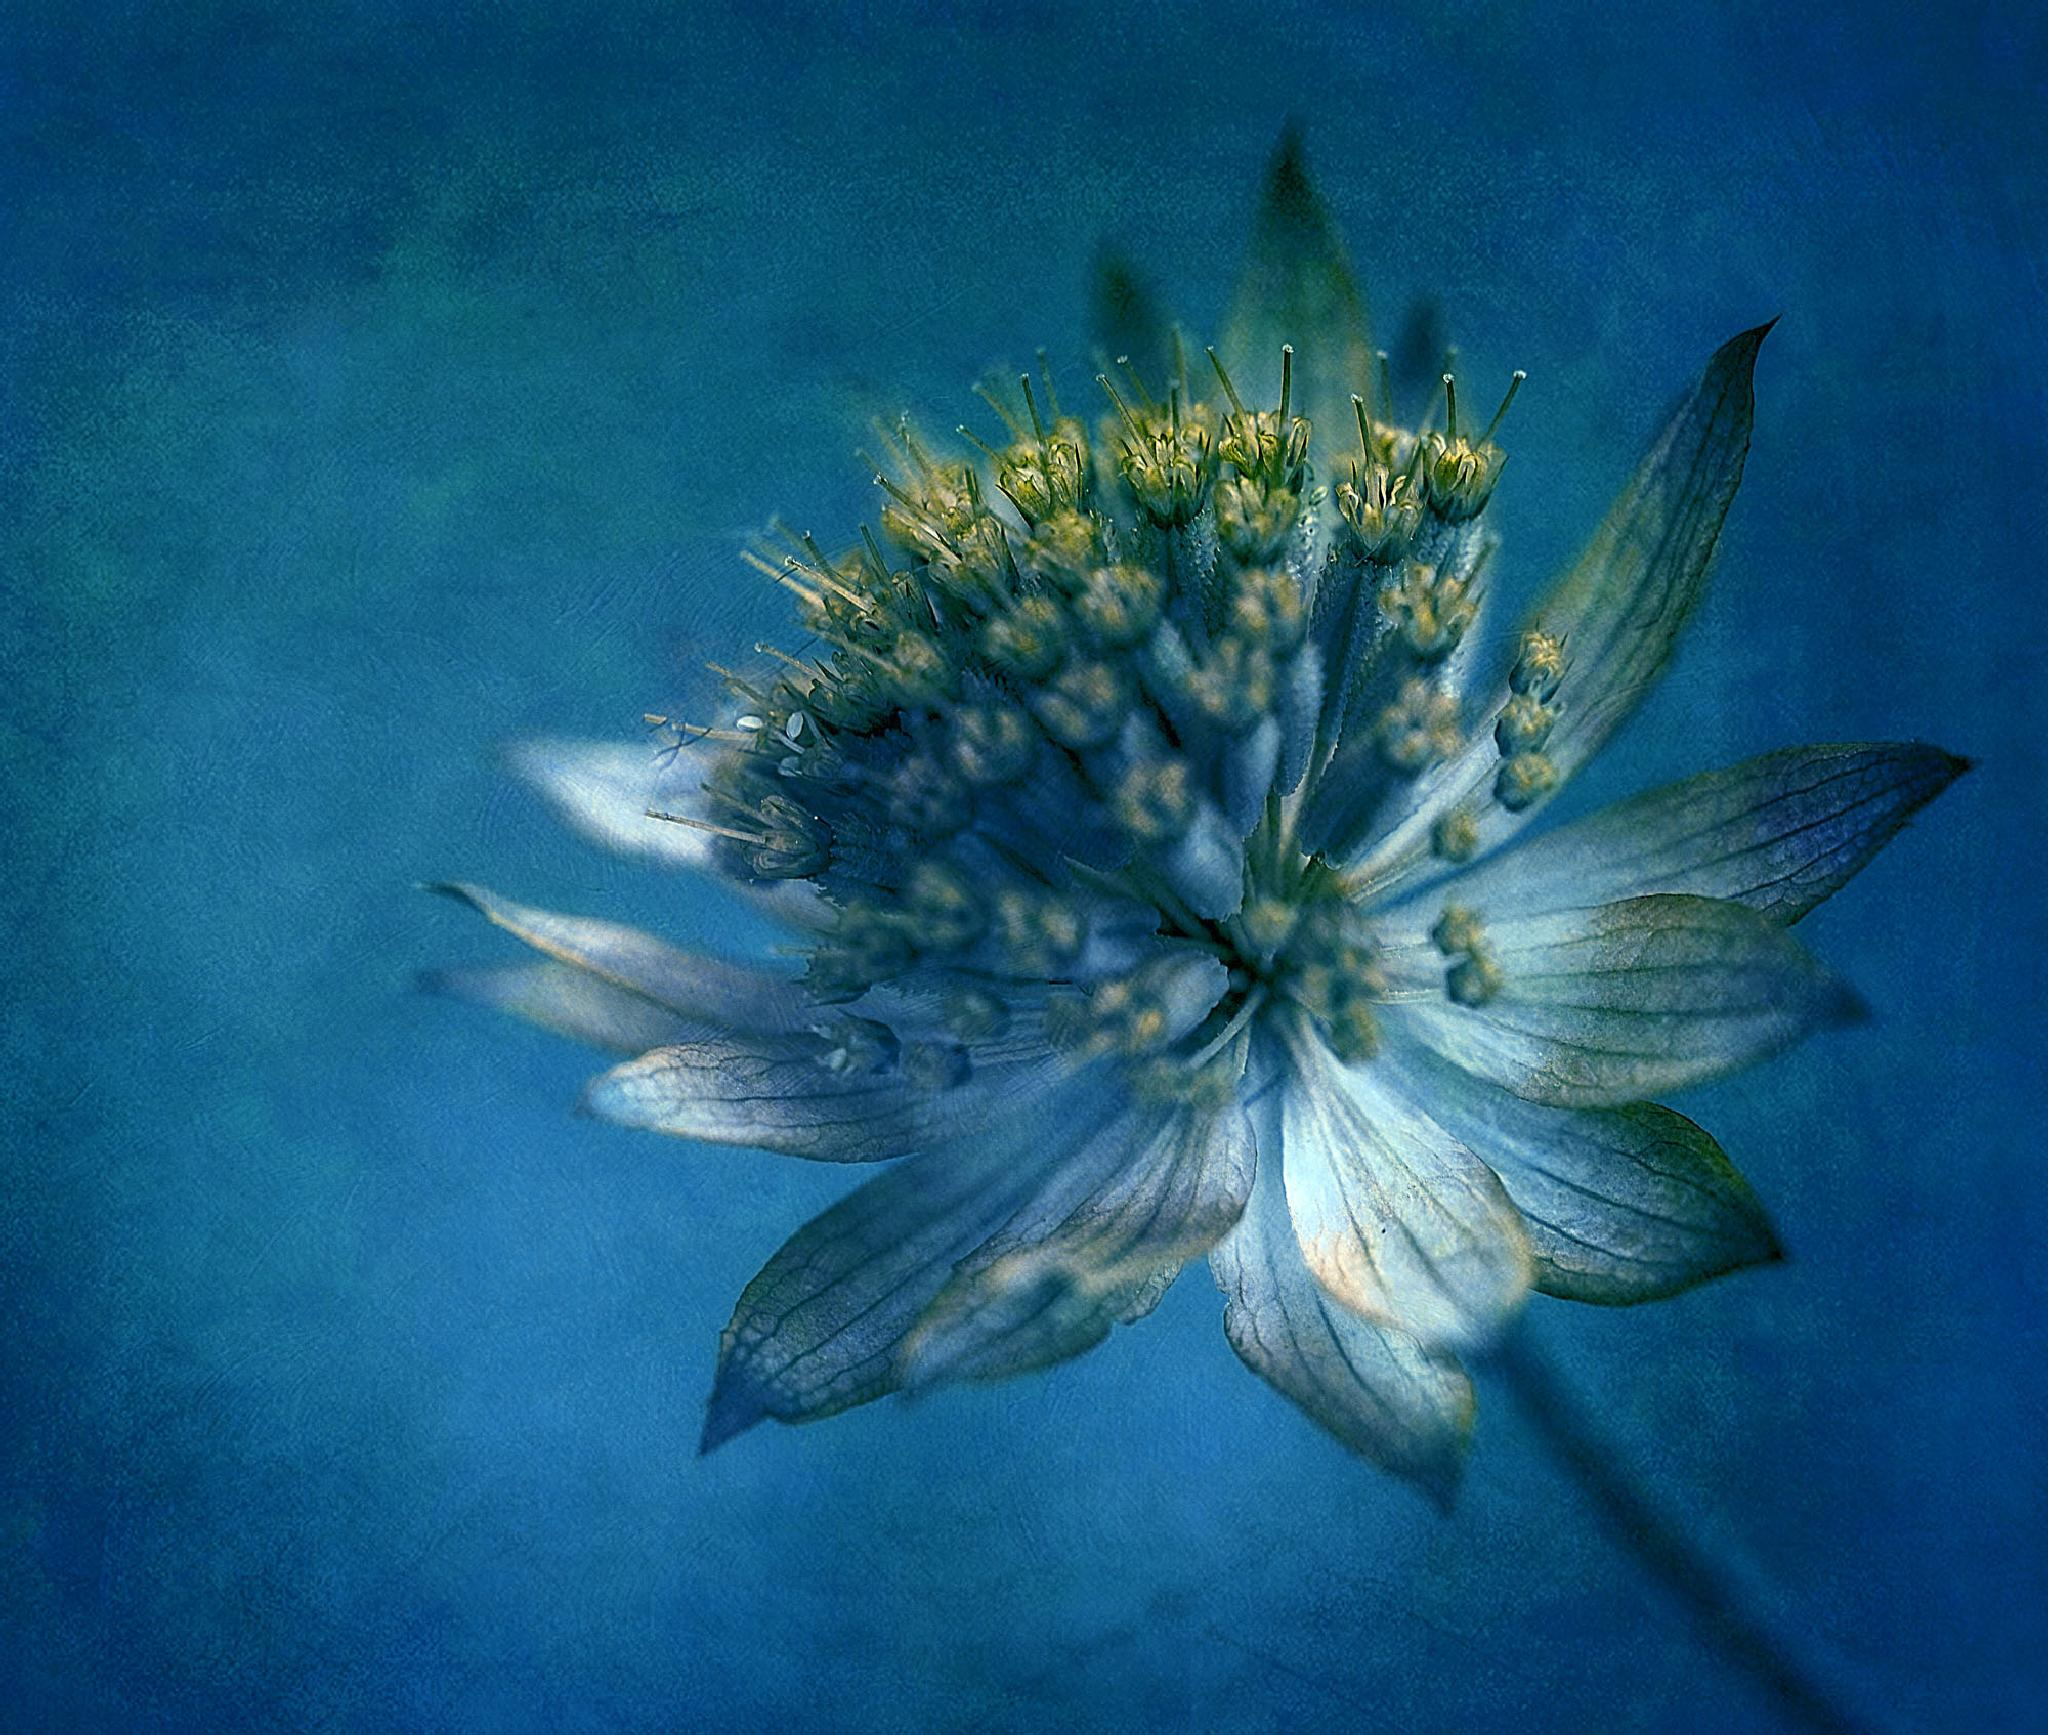 Astrantia by clinthudson